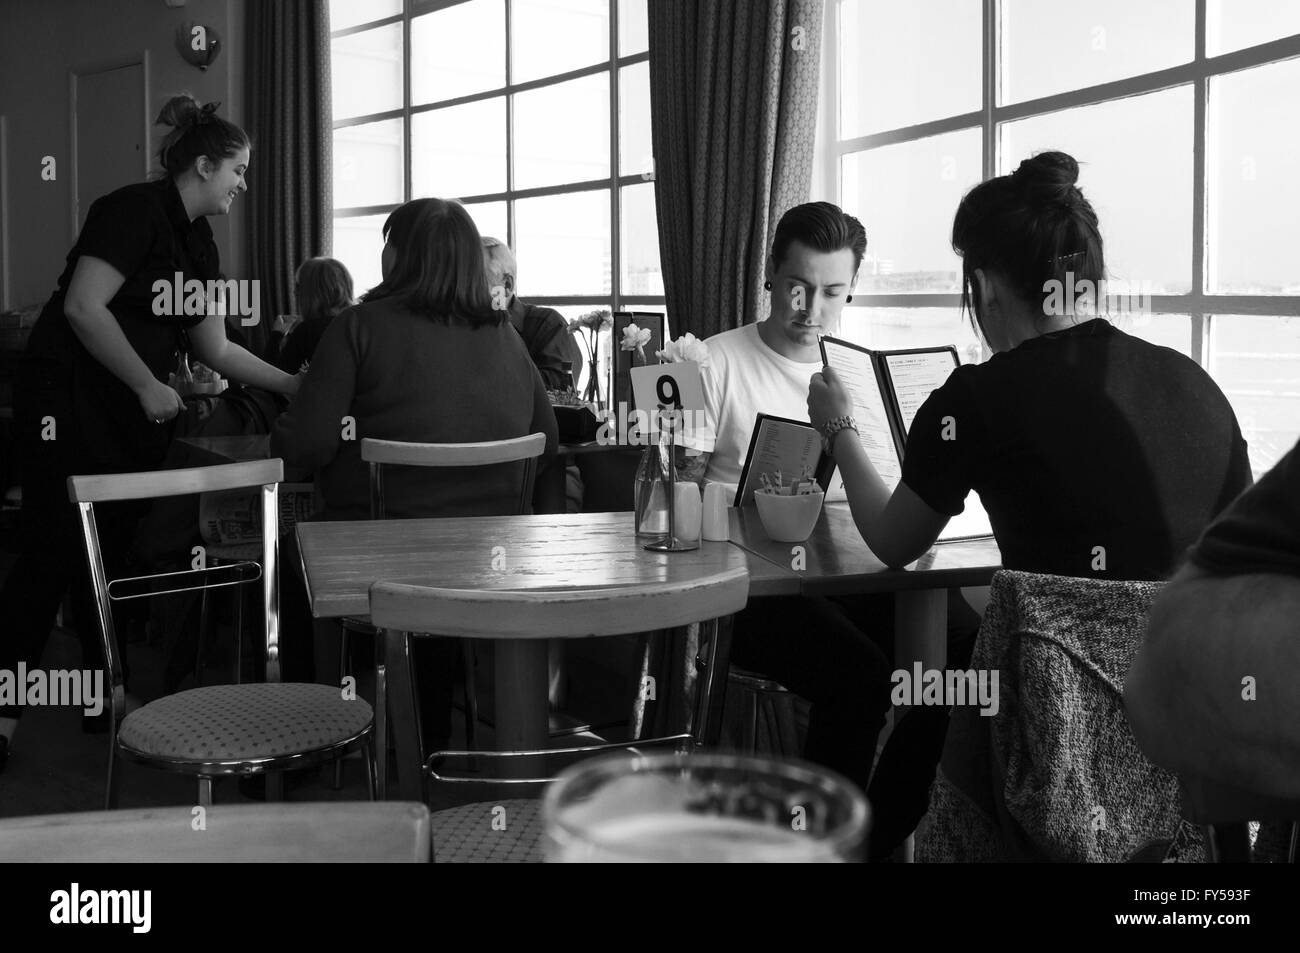 A black and white image of people studying menus - Stock Image